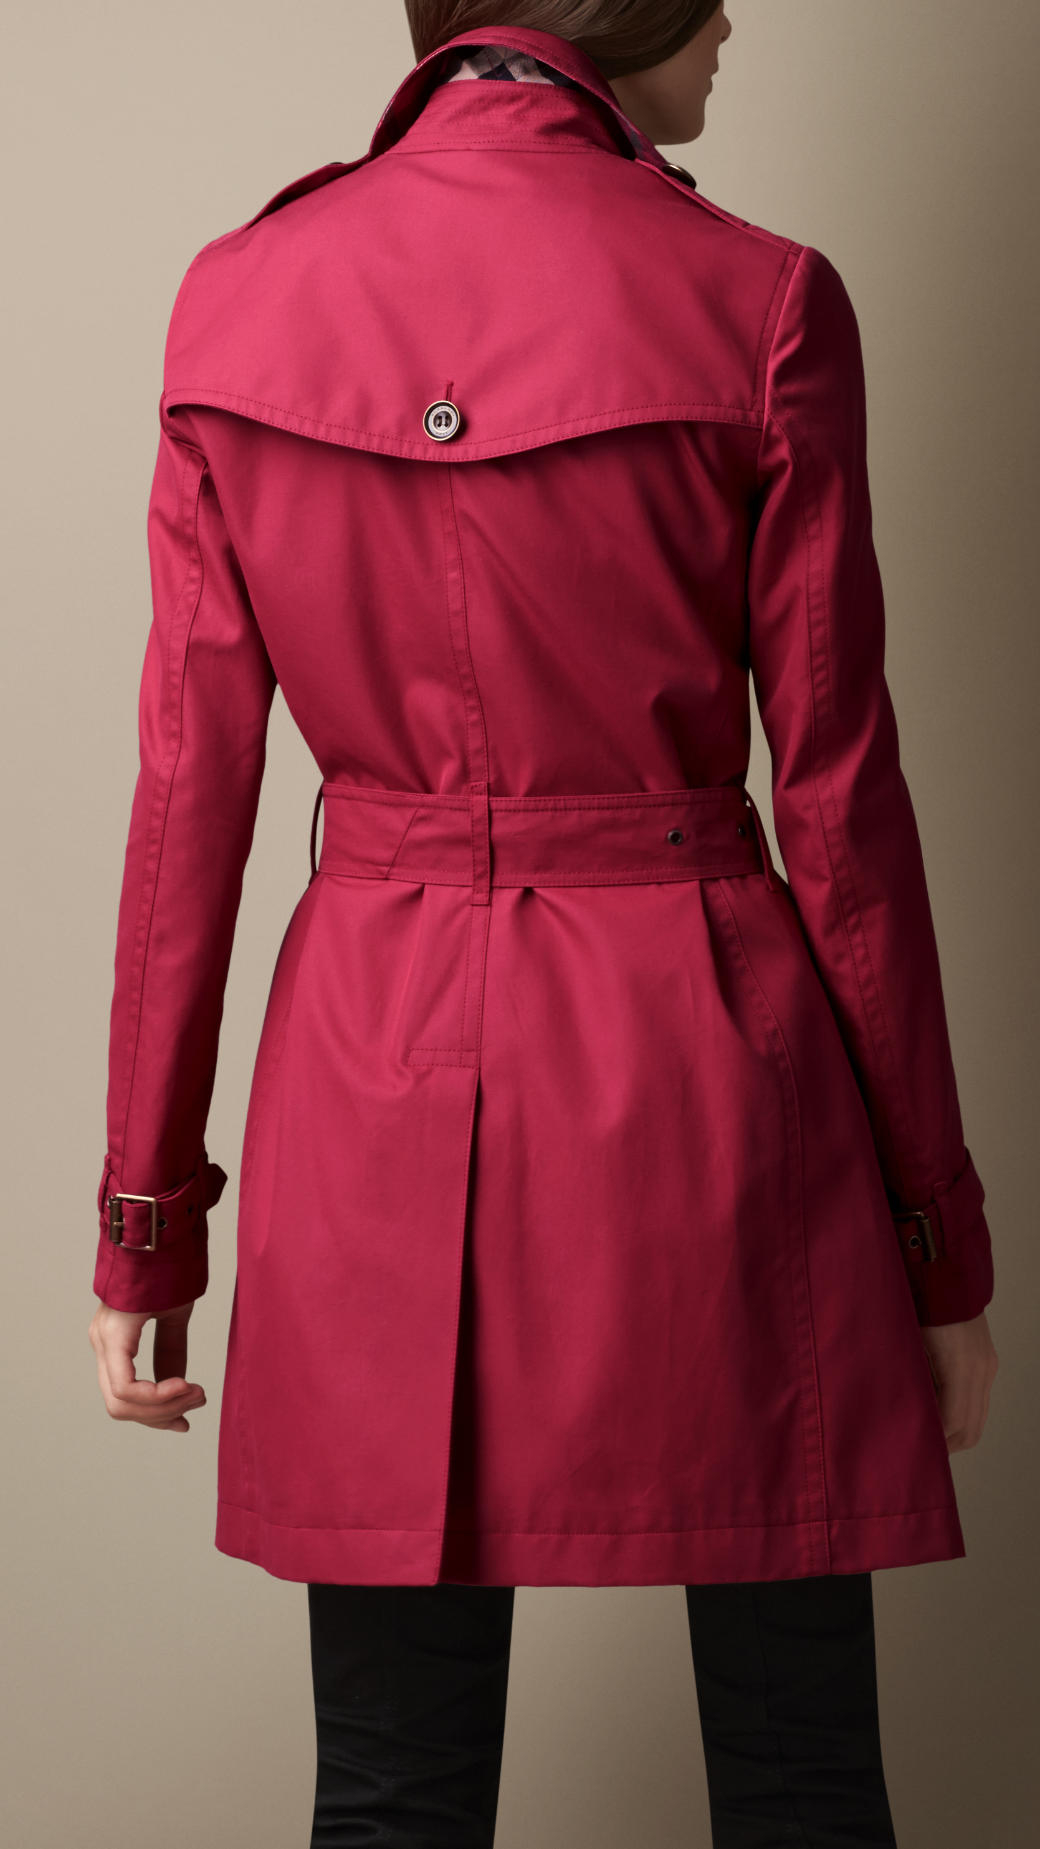 Shop the latest styles of Womens Trenchcoat Coats at Macys. Check out our designer collection of chic coats including peacoats, trench coats, puffer coats and more! Macy's Presents: The Edit- A curated mix of fashion and inspiration Check It Out. Pink (5) Purple (6) Red (17) Silver (1).